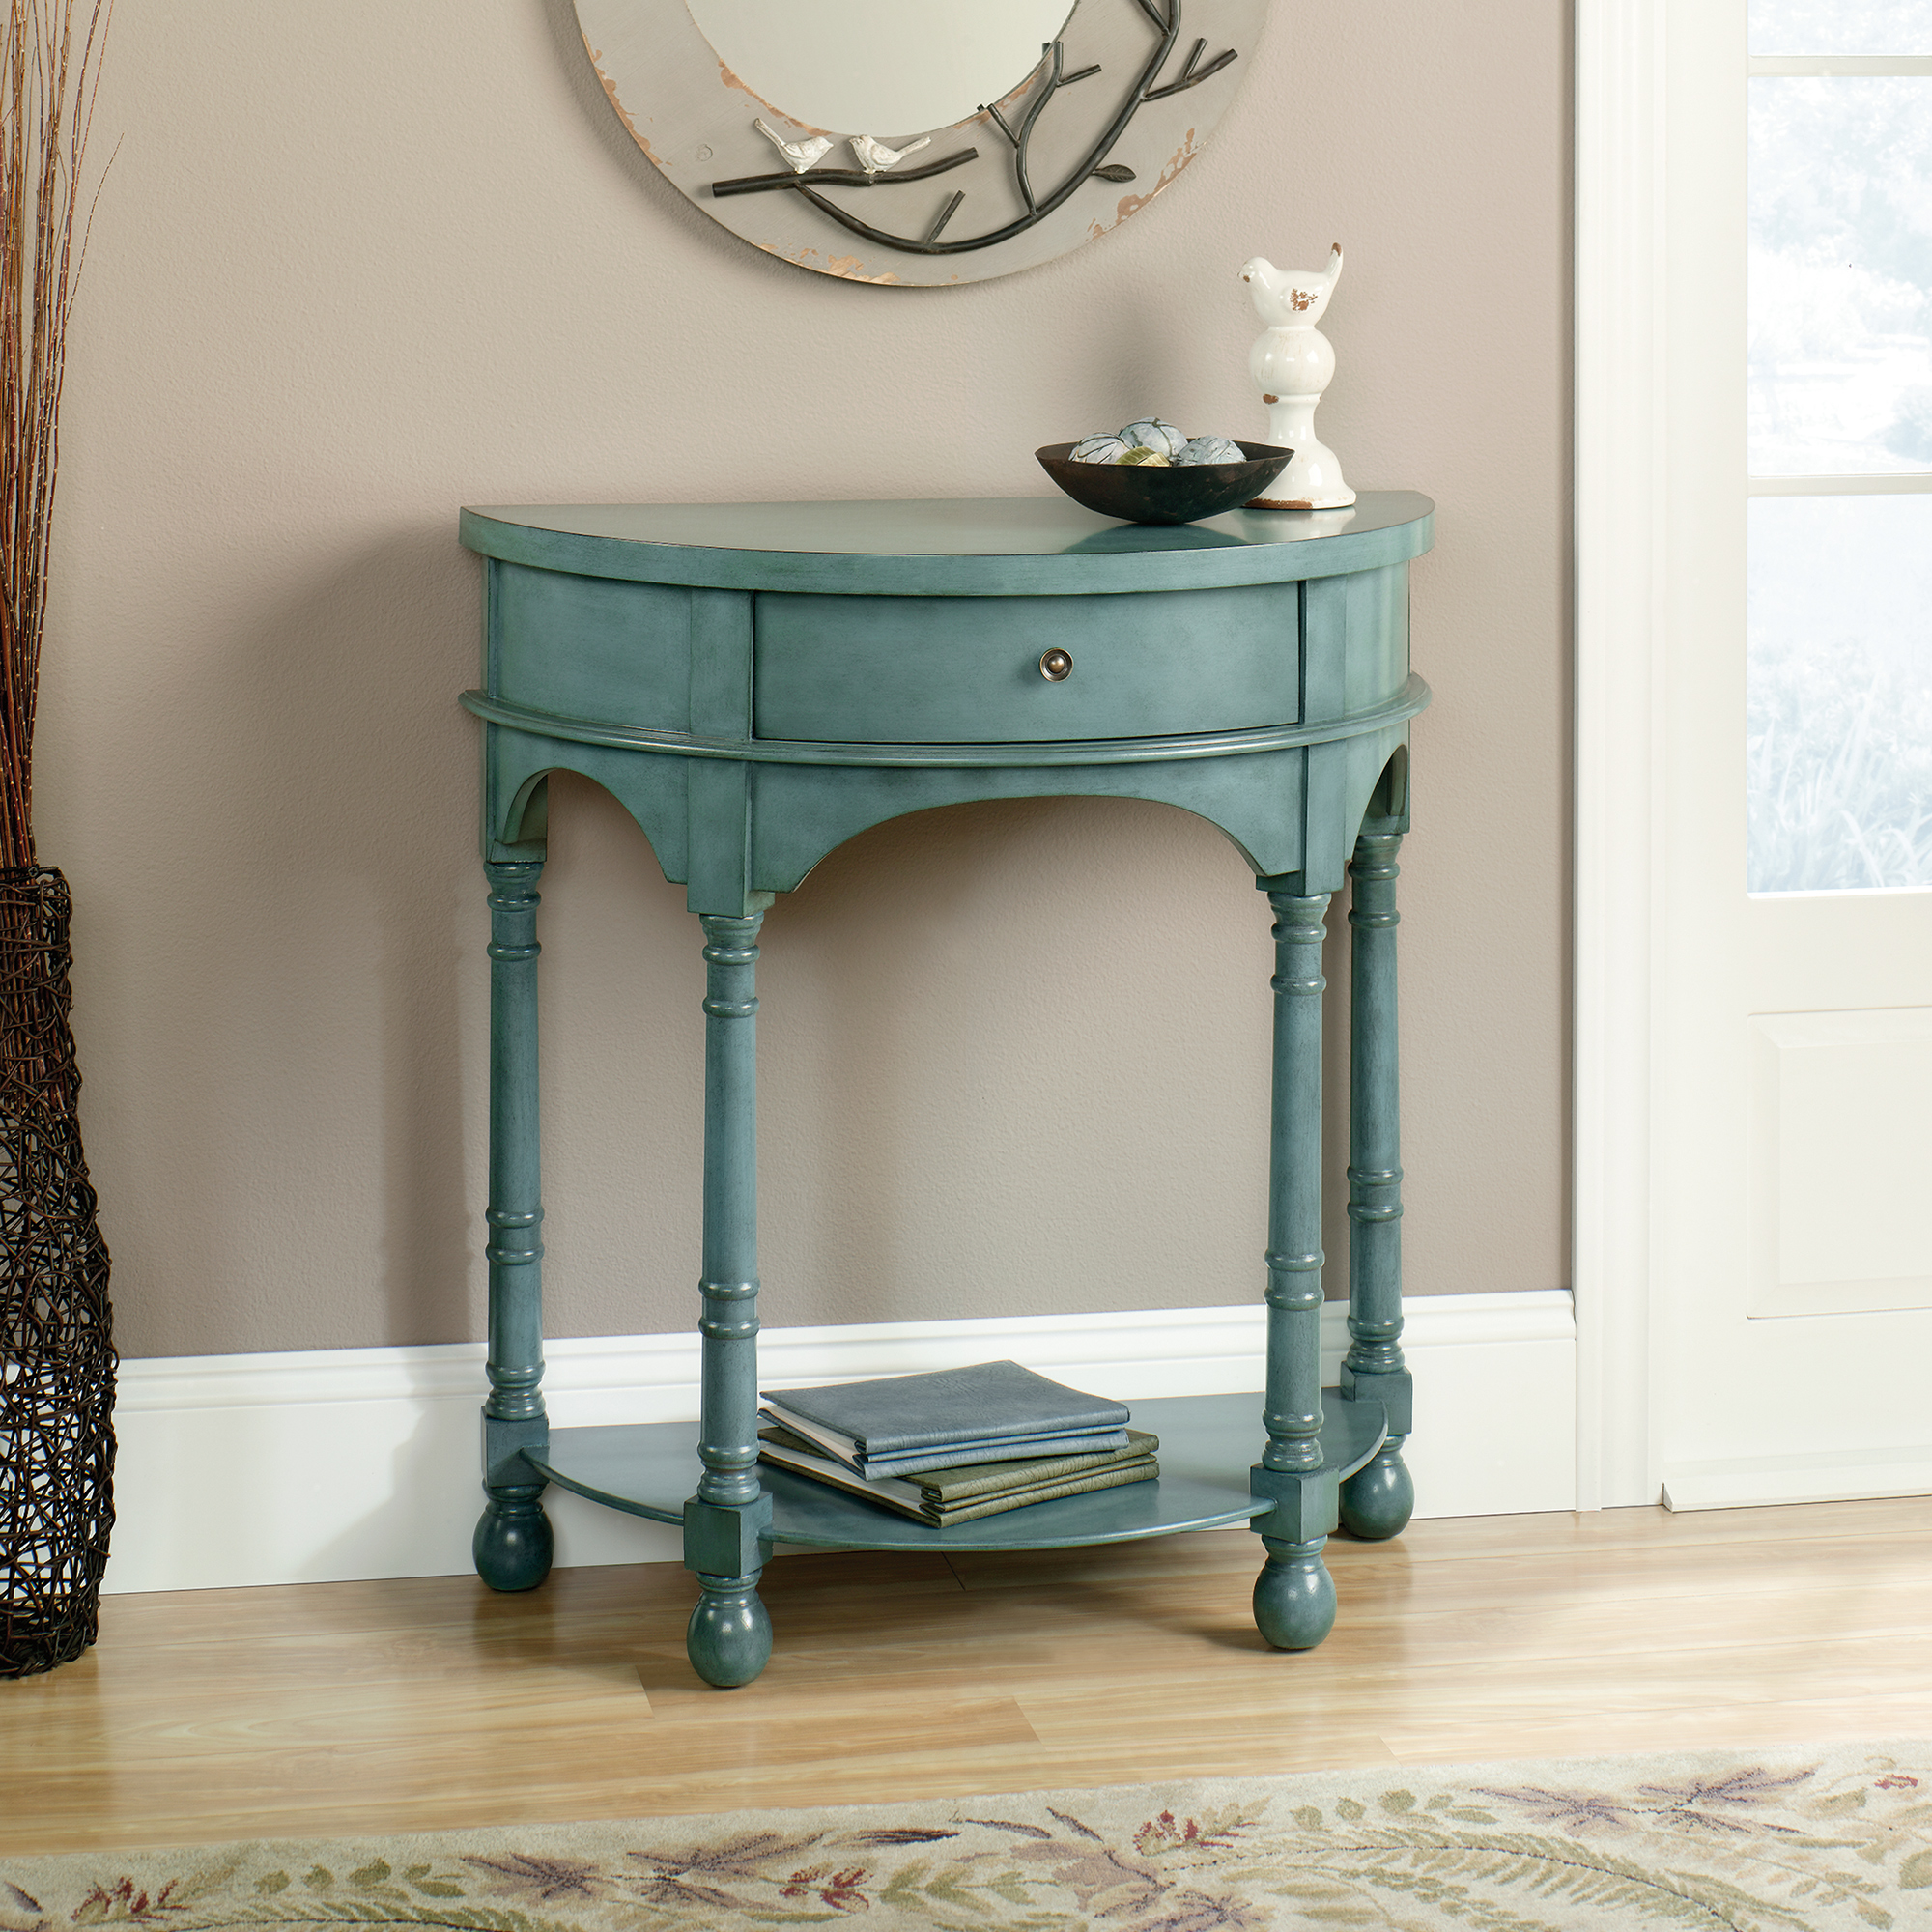 harbor view accent table sauder teal oval glass top coffee pub dining set inch high nightstand ceiling chandelier white patio and gold lamp garden drinks cooler decor ideas